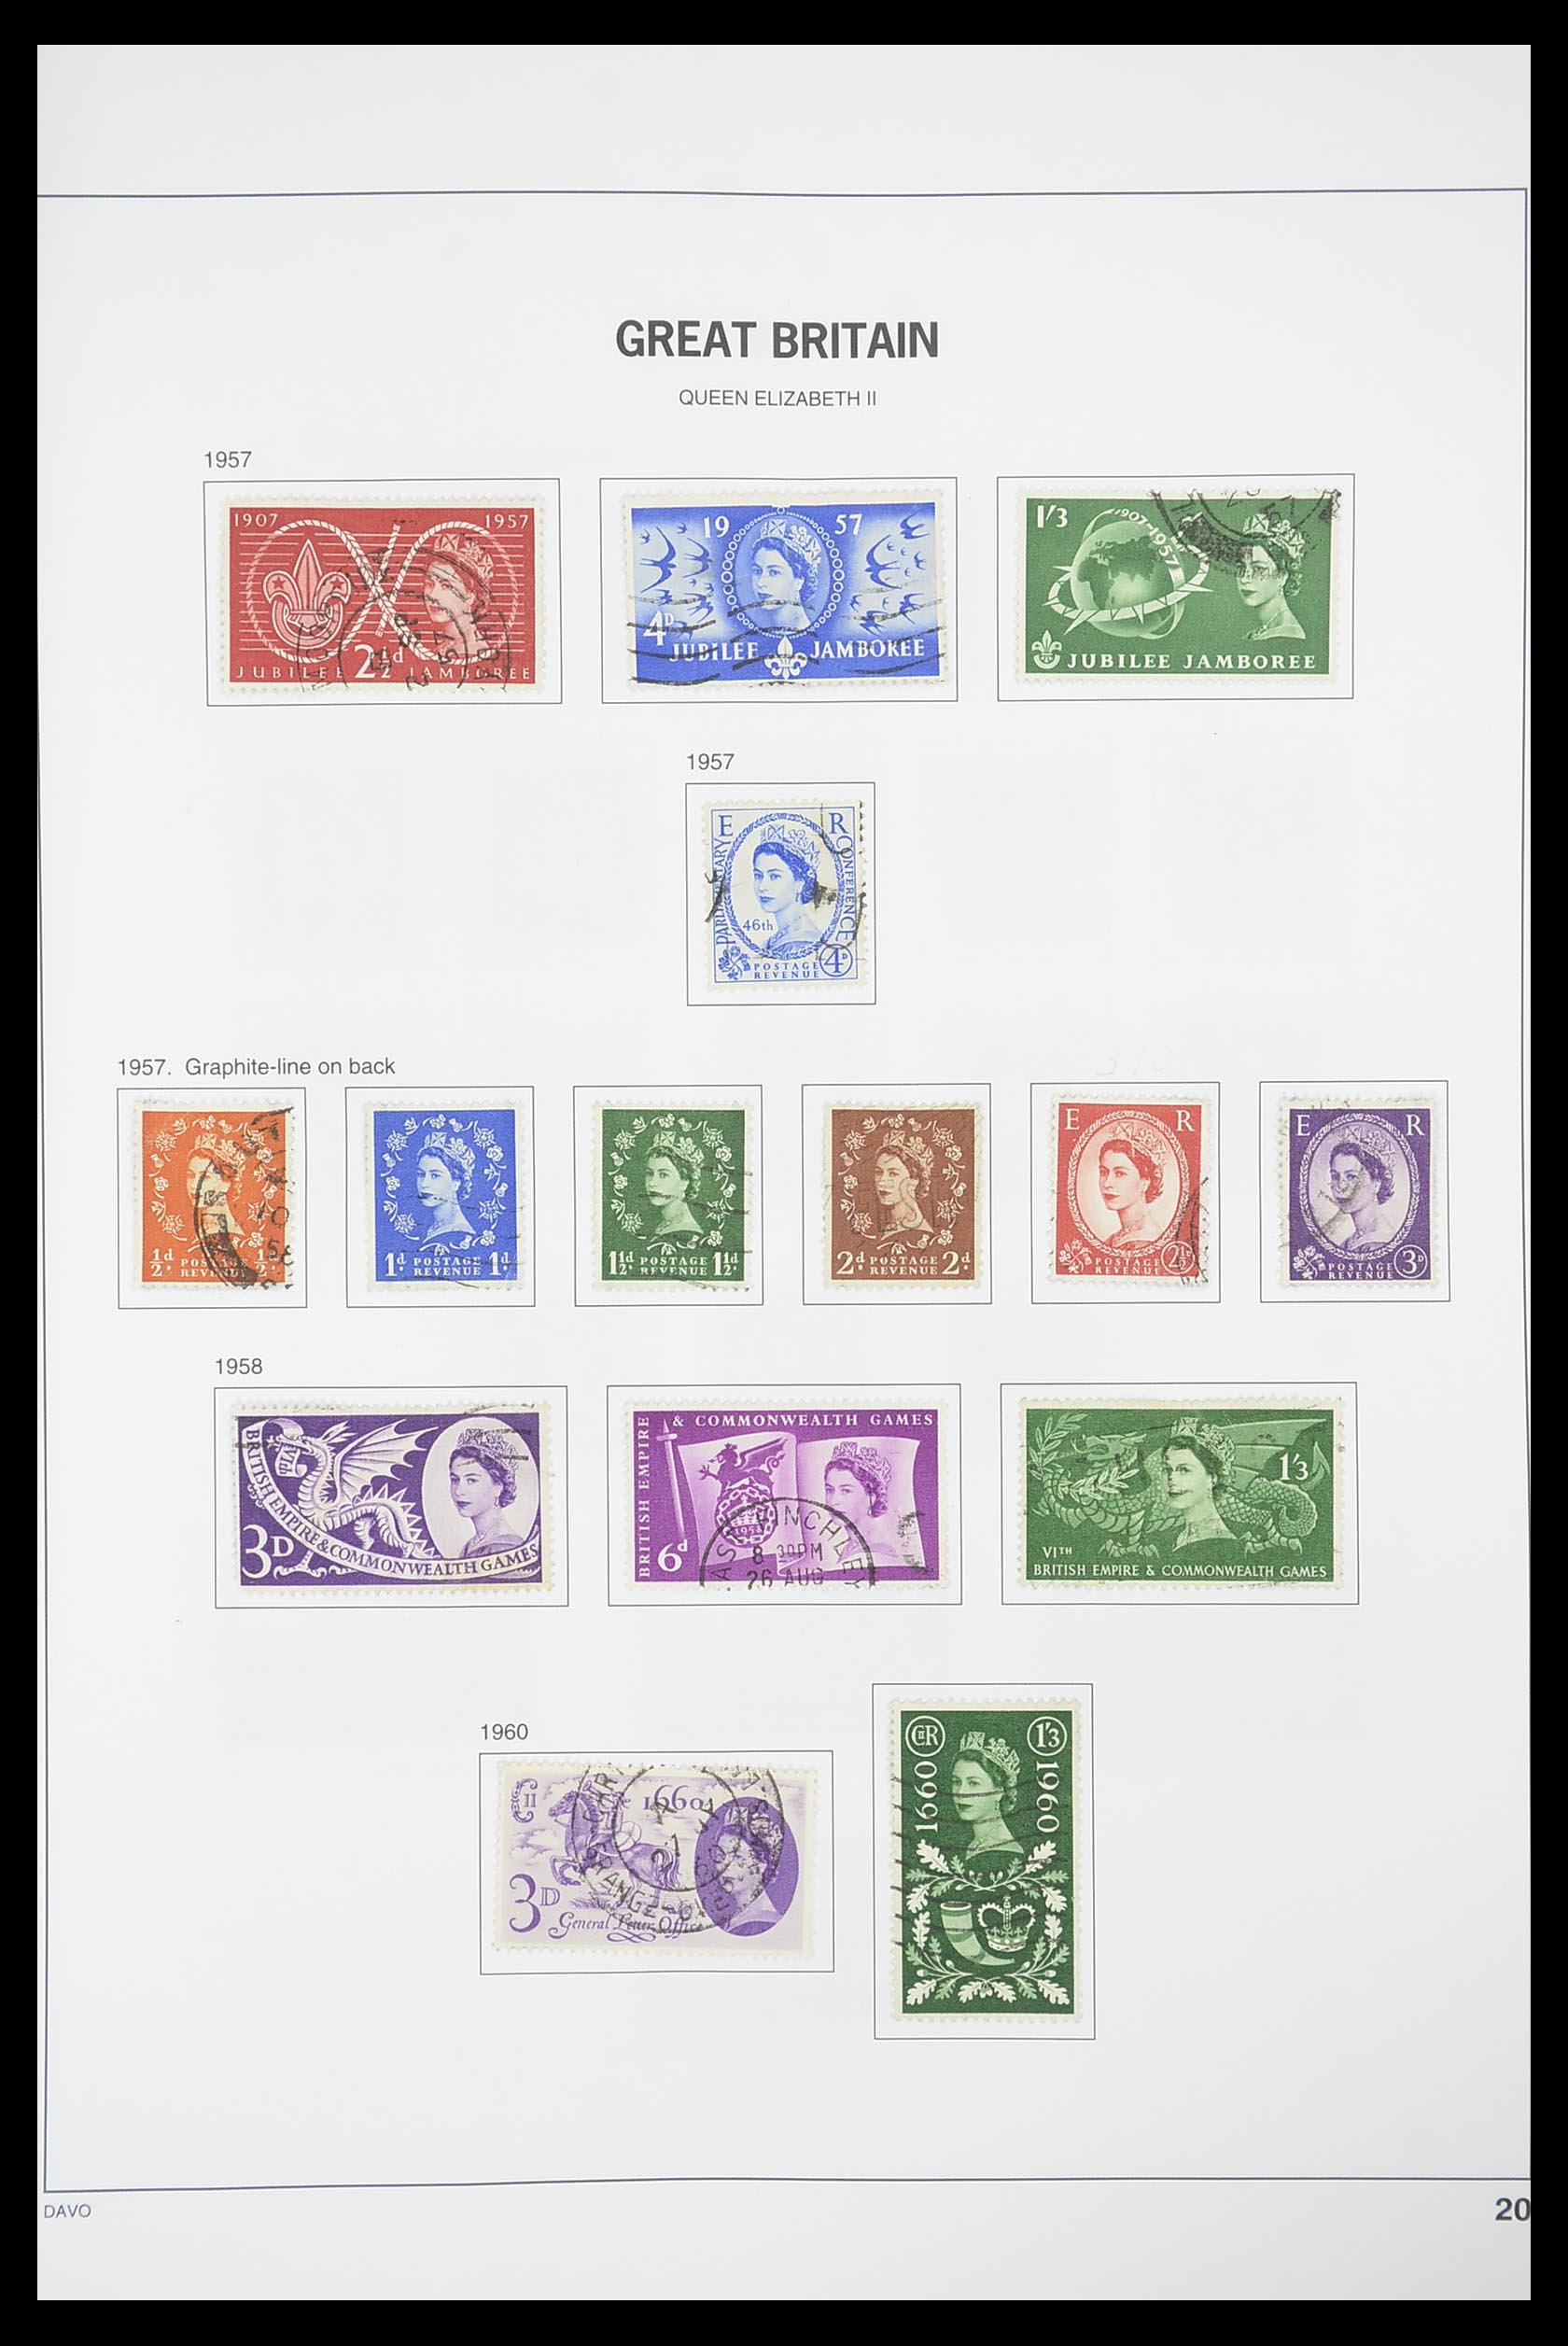 33898 019 - Stamp collection 33898 Great Britain 1840-2006.